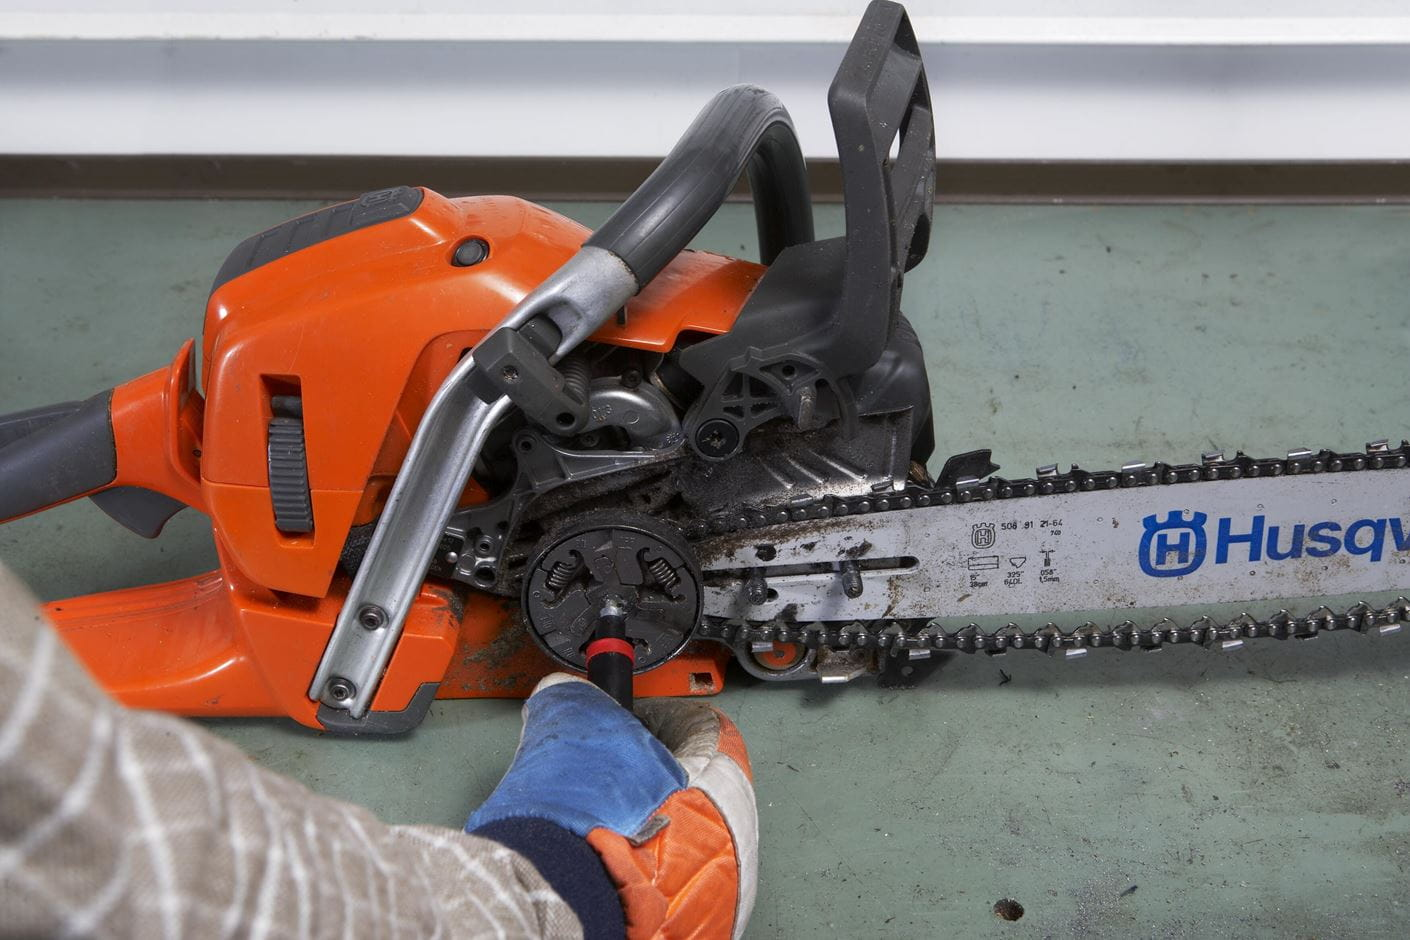 Working with chainsaws part 1